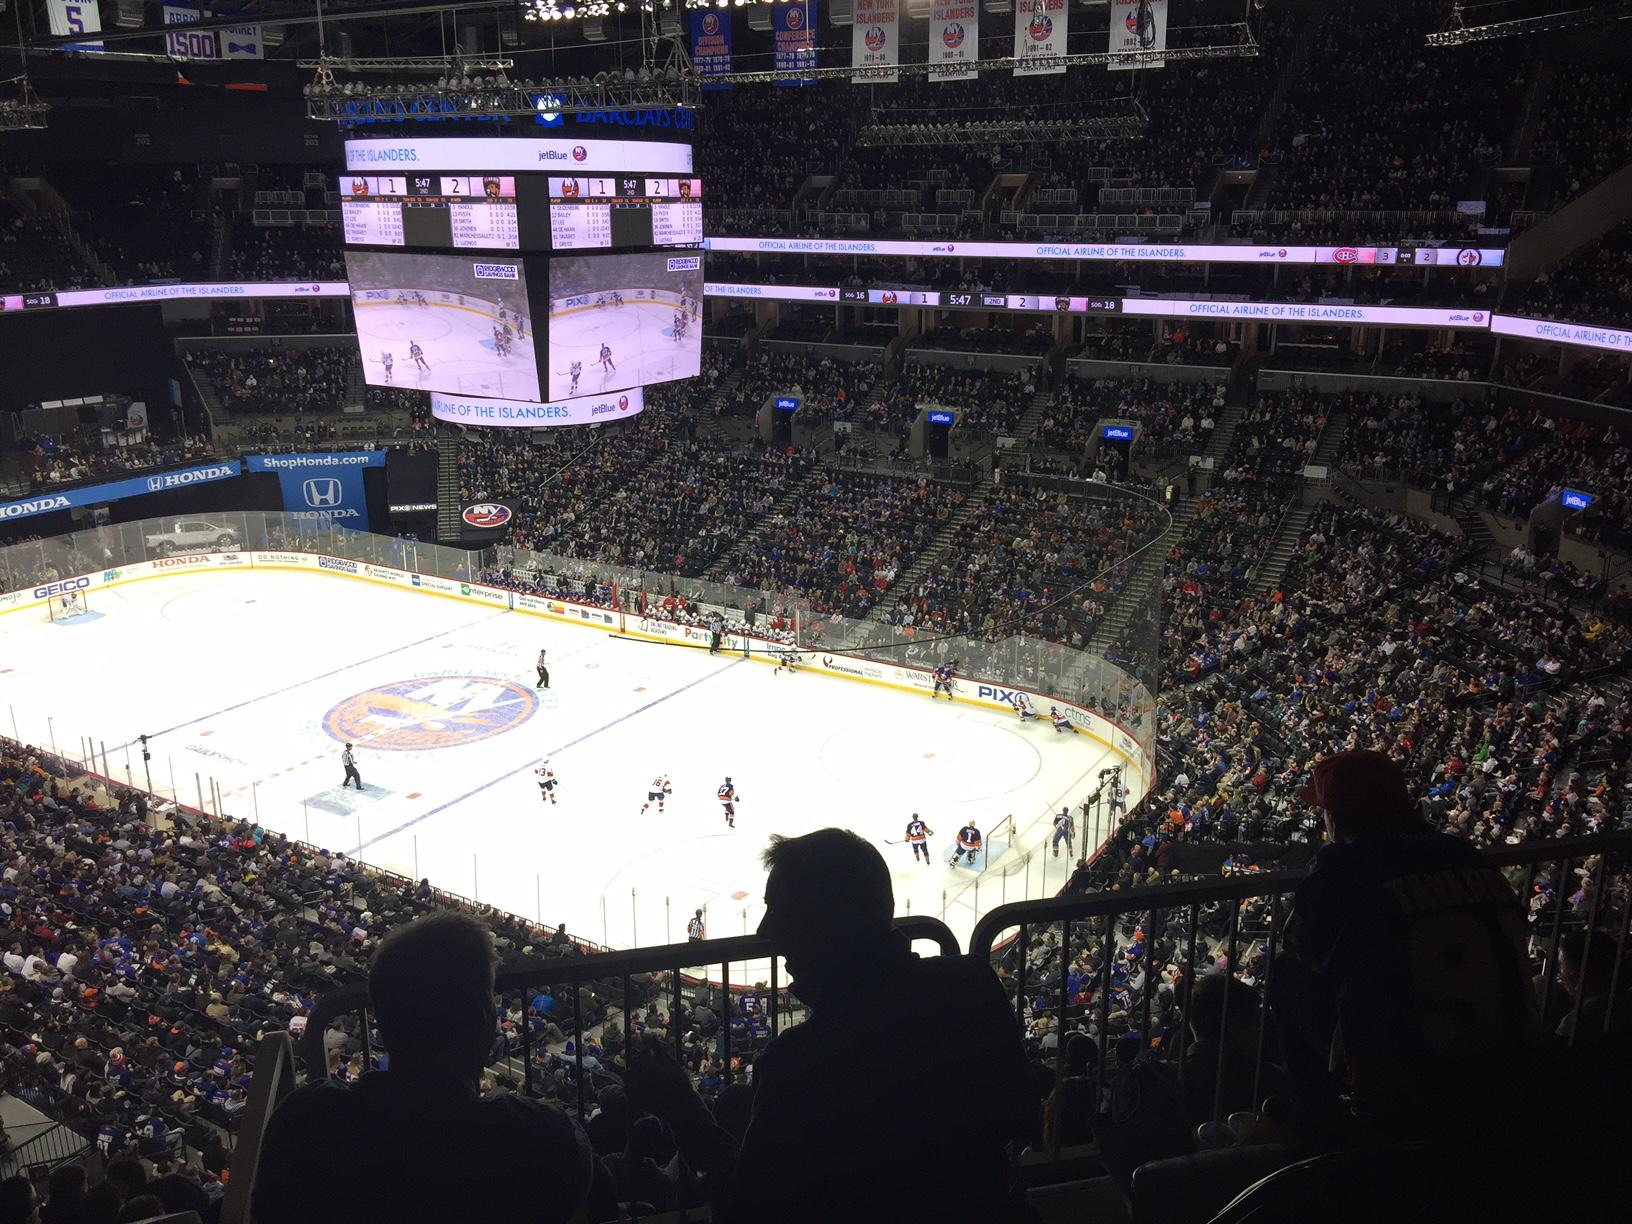 Barclays Center Section 220 Row 10 Seat 11